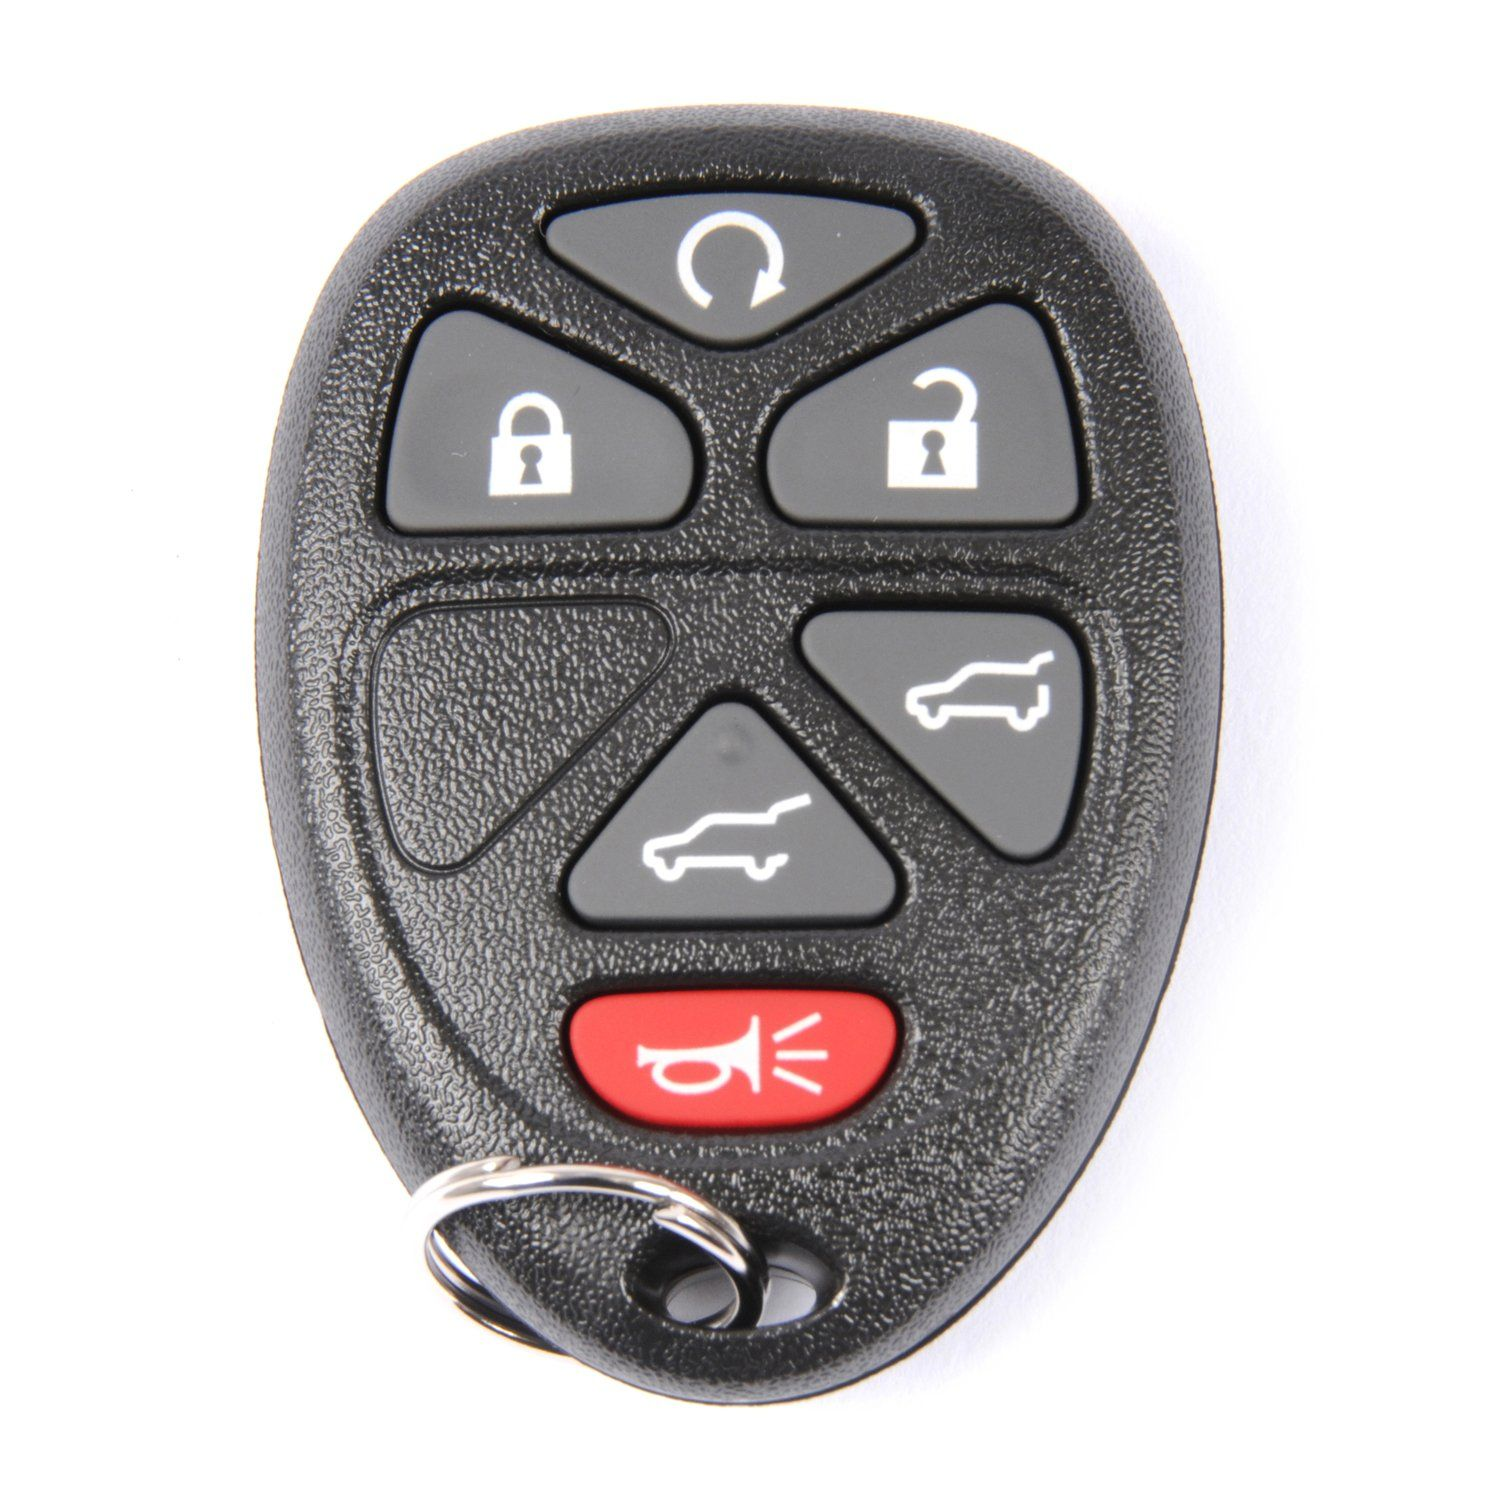 Acdelco 22951510 Gm Original Equipment 6 Button Keyless Entry